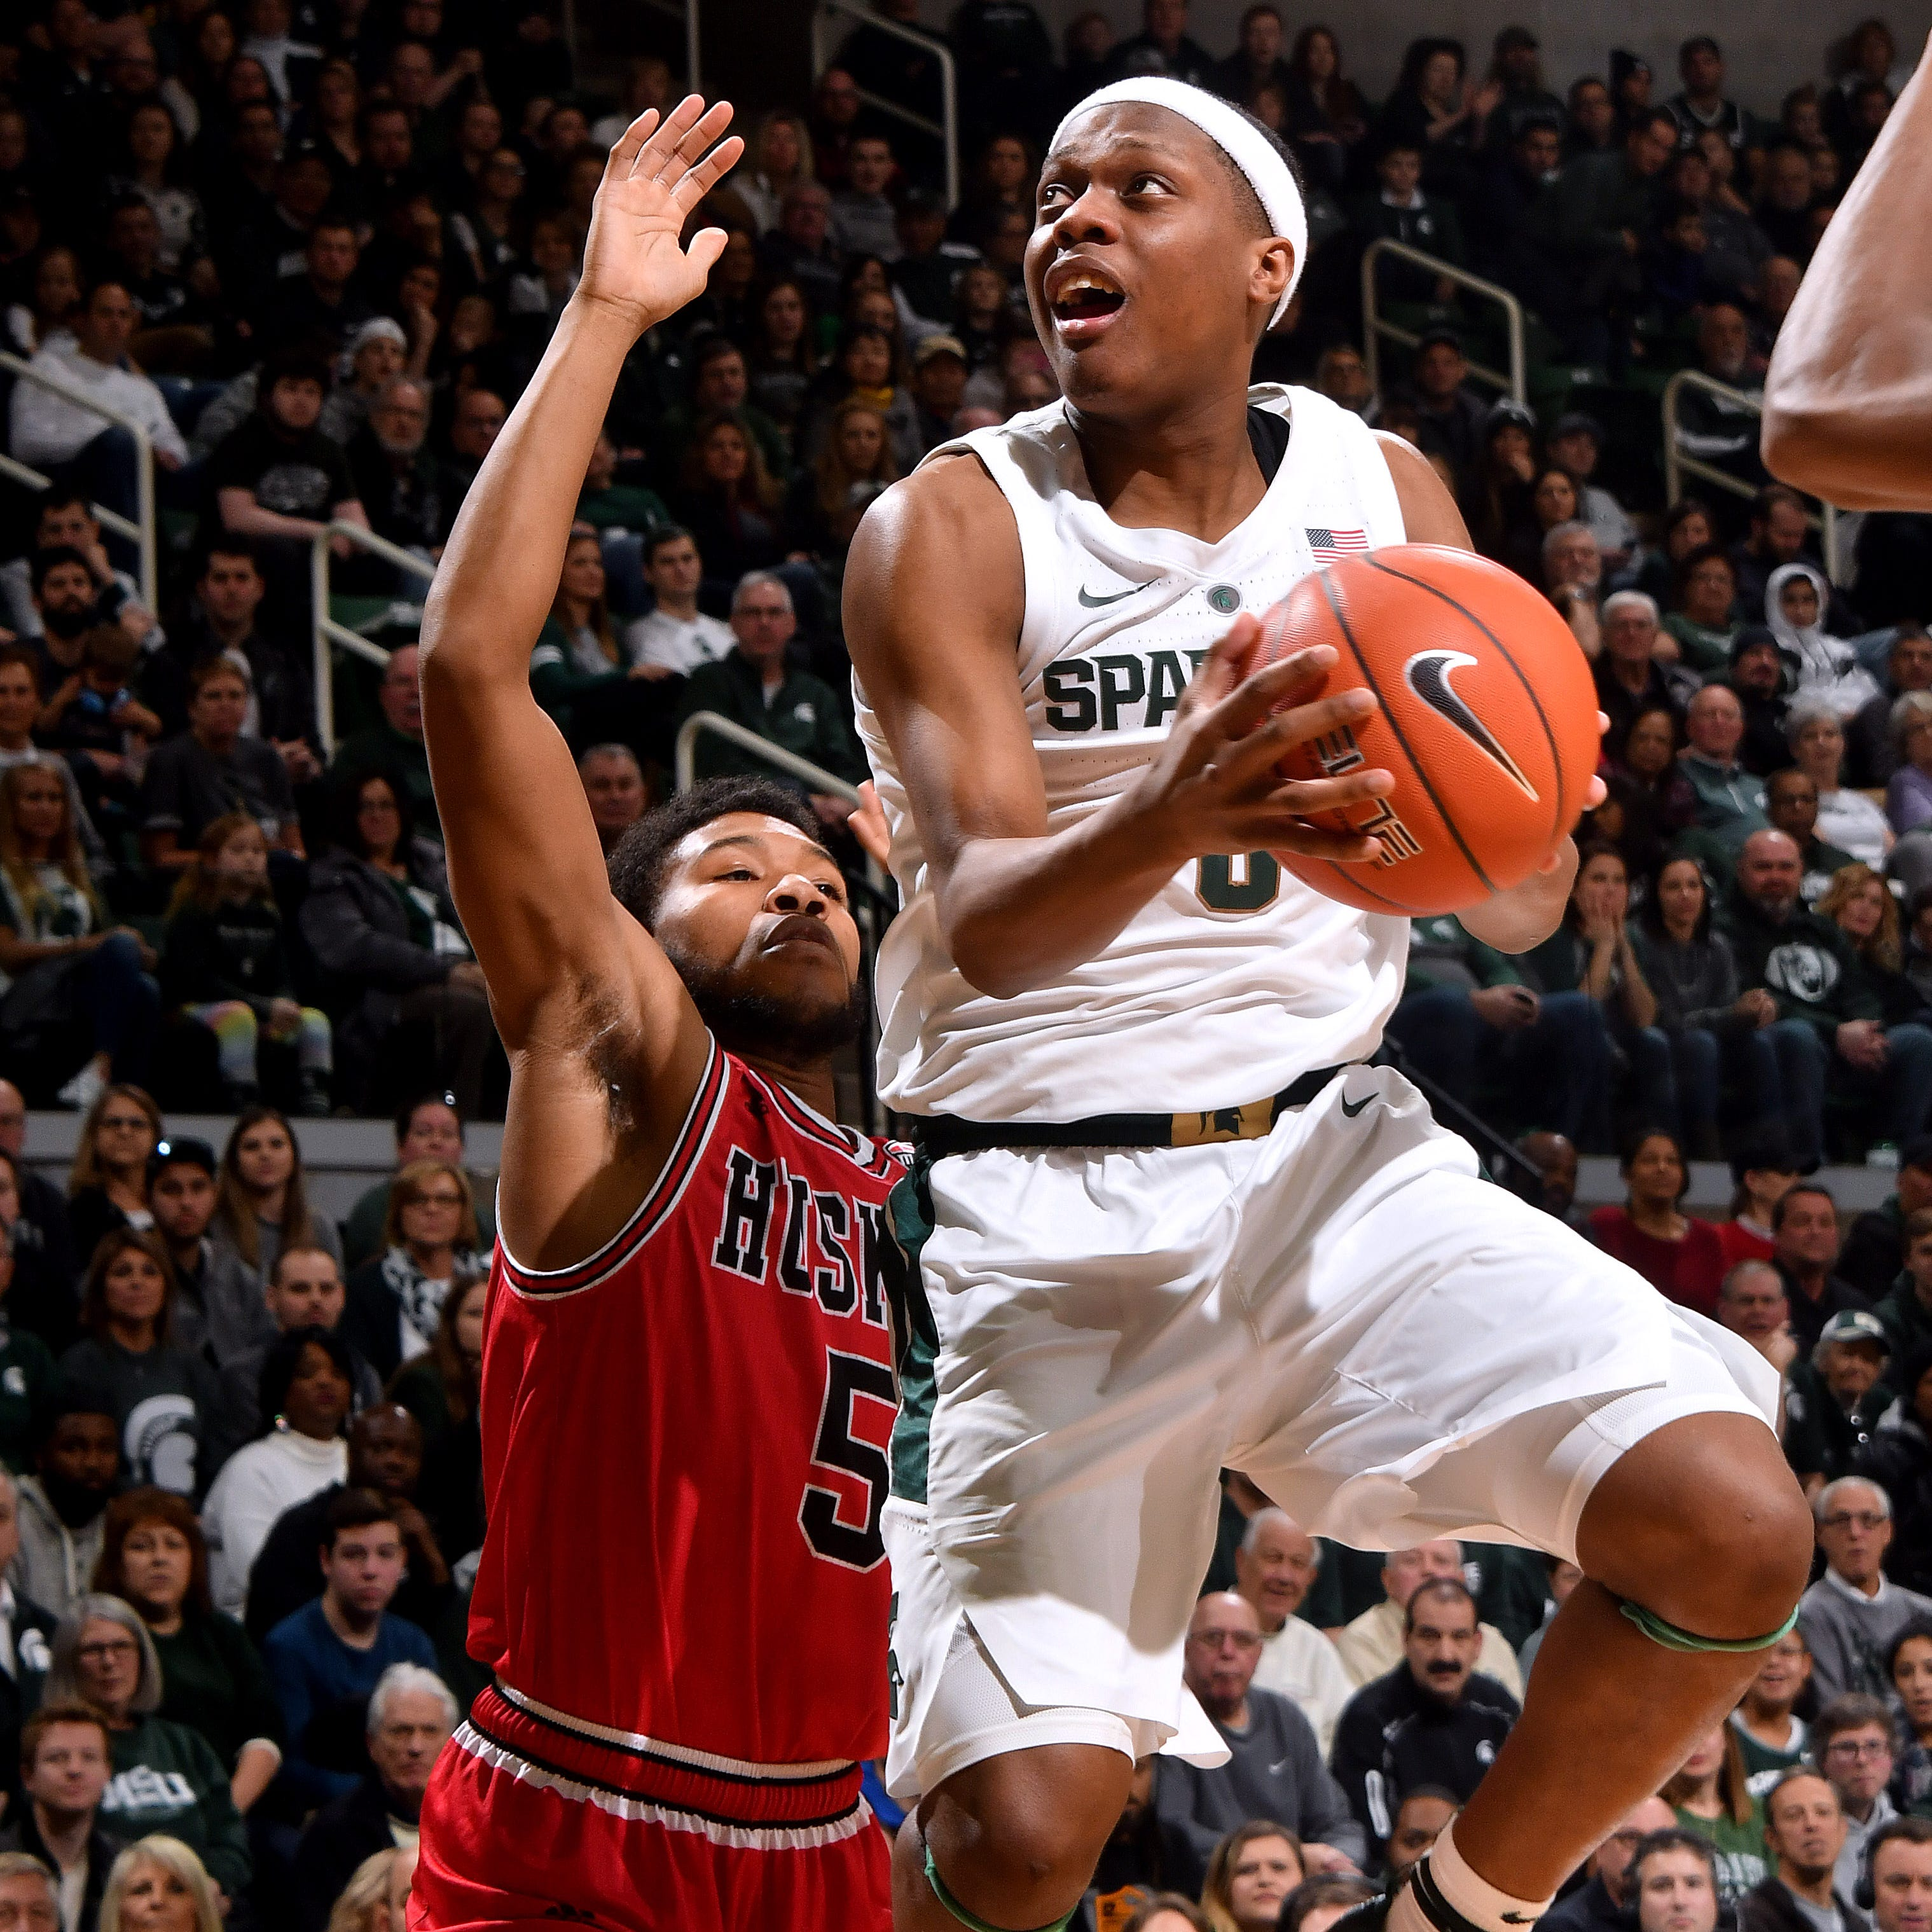 Charboneau: There's no debate: Michigan State's Cassius Winston is Big Ten Player of Year